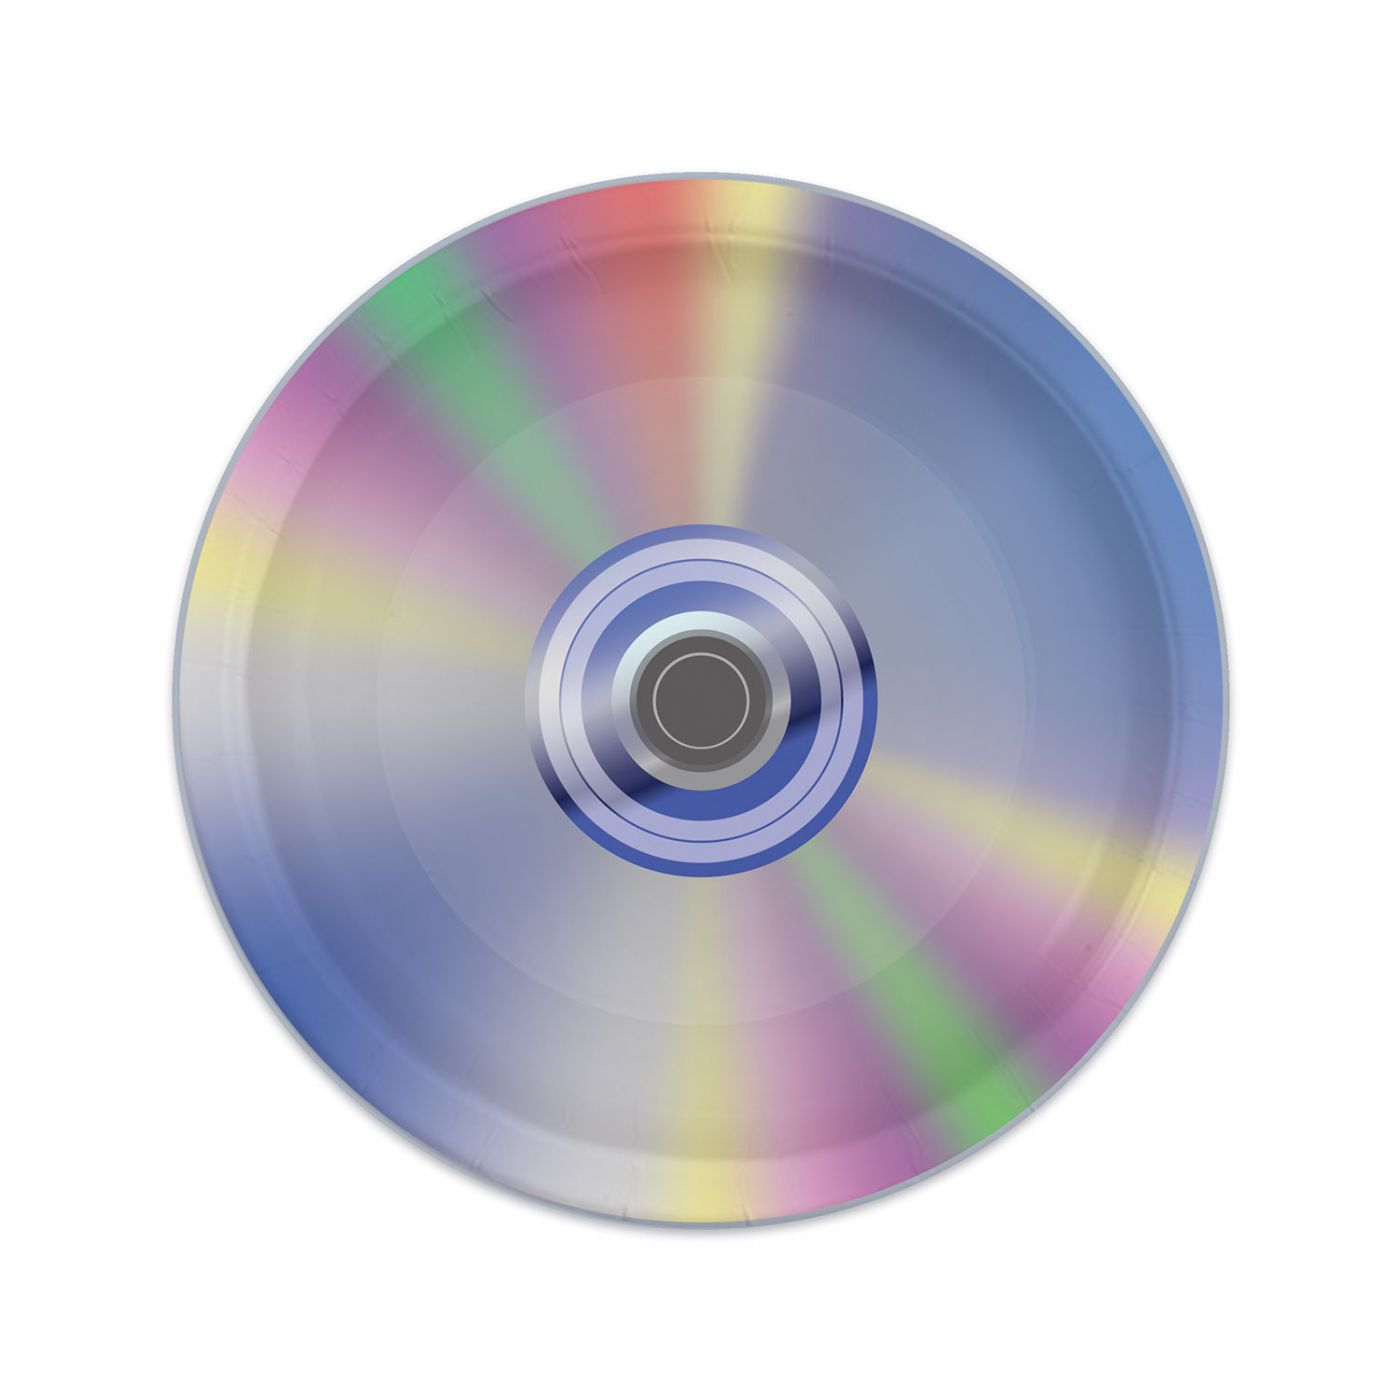 Image of 90's CD Plates